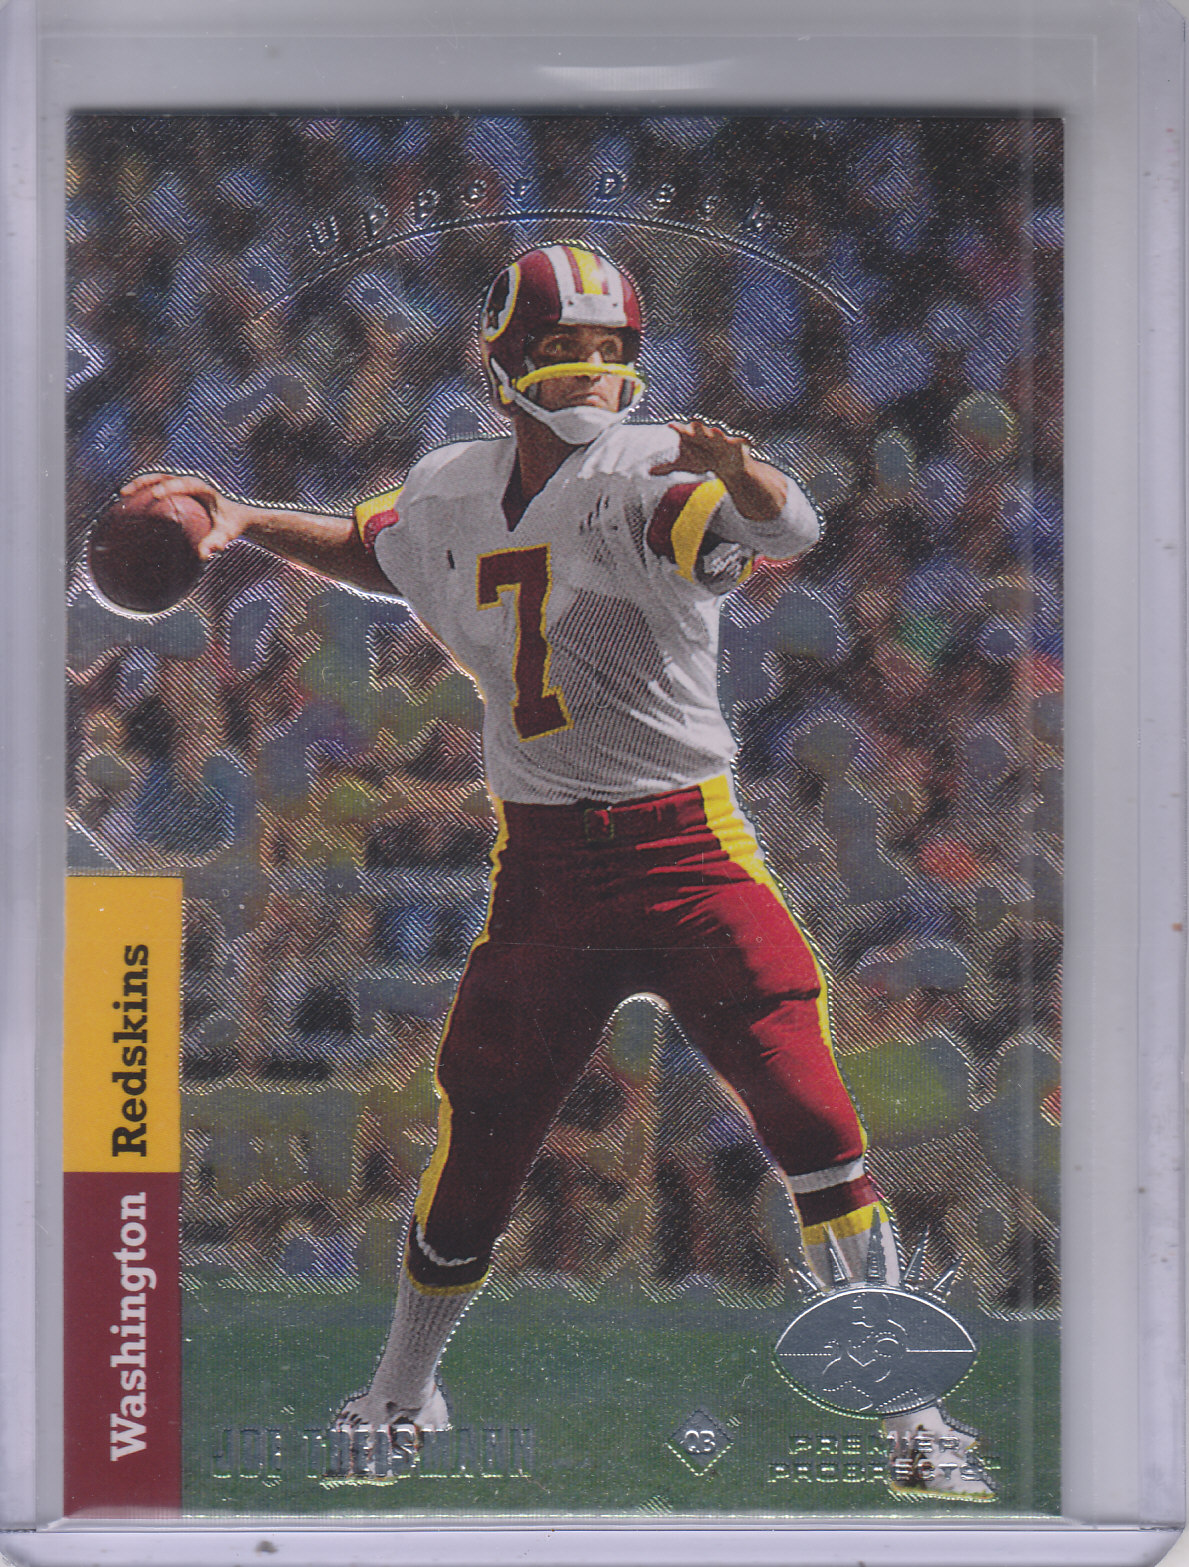 2008 SP Rookie Edition #414 Joe Theismann 93